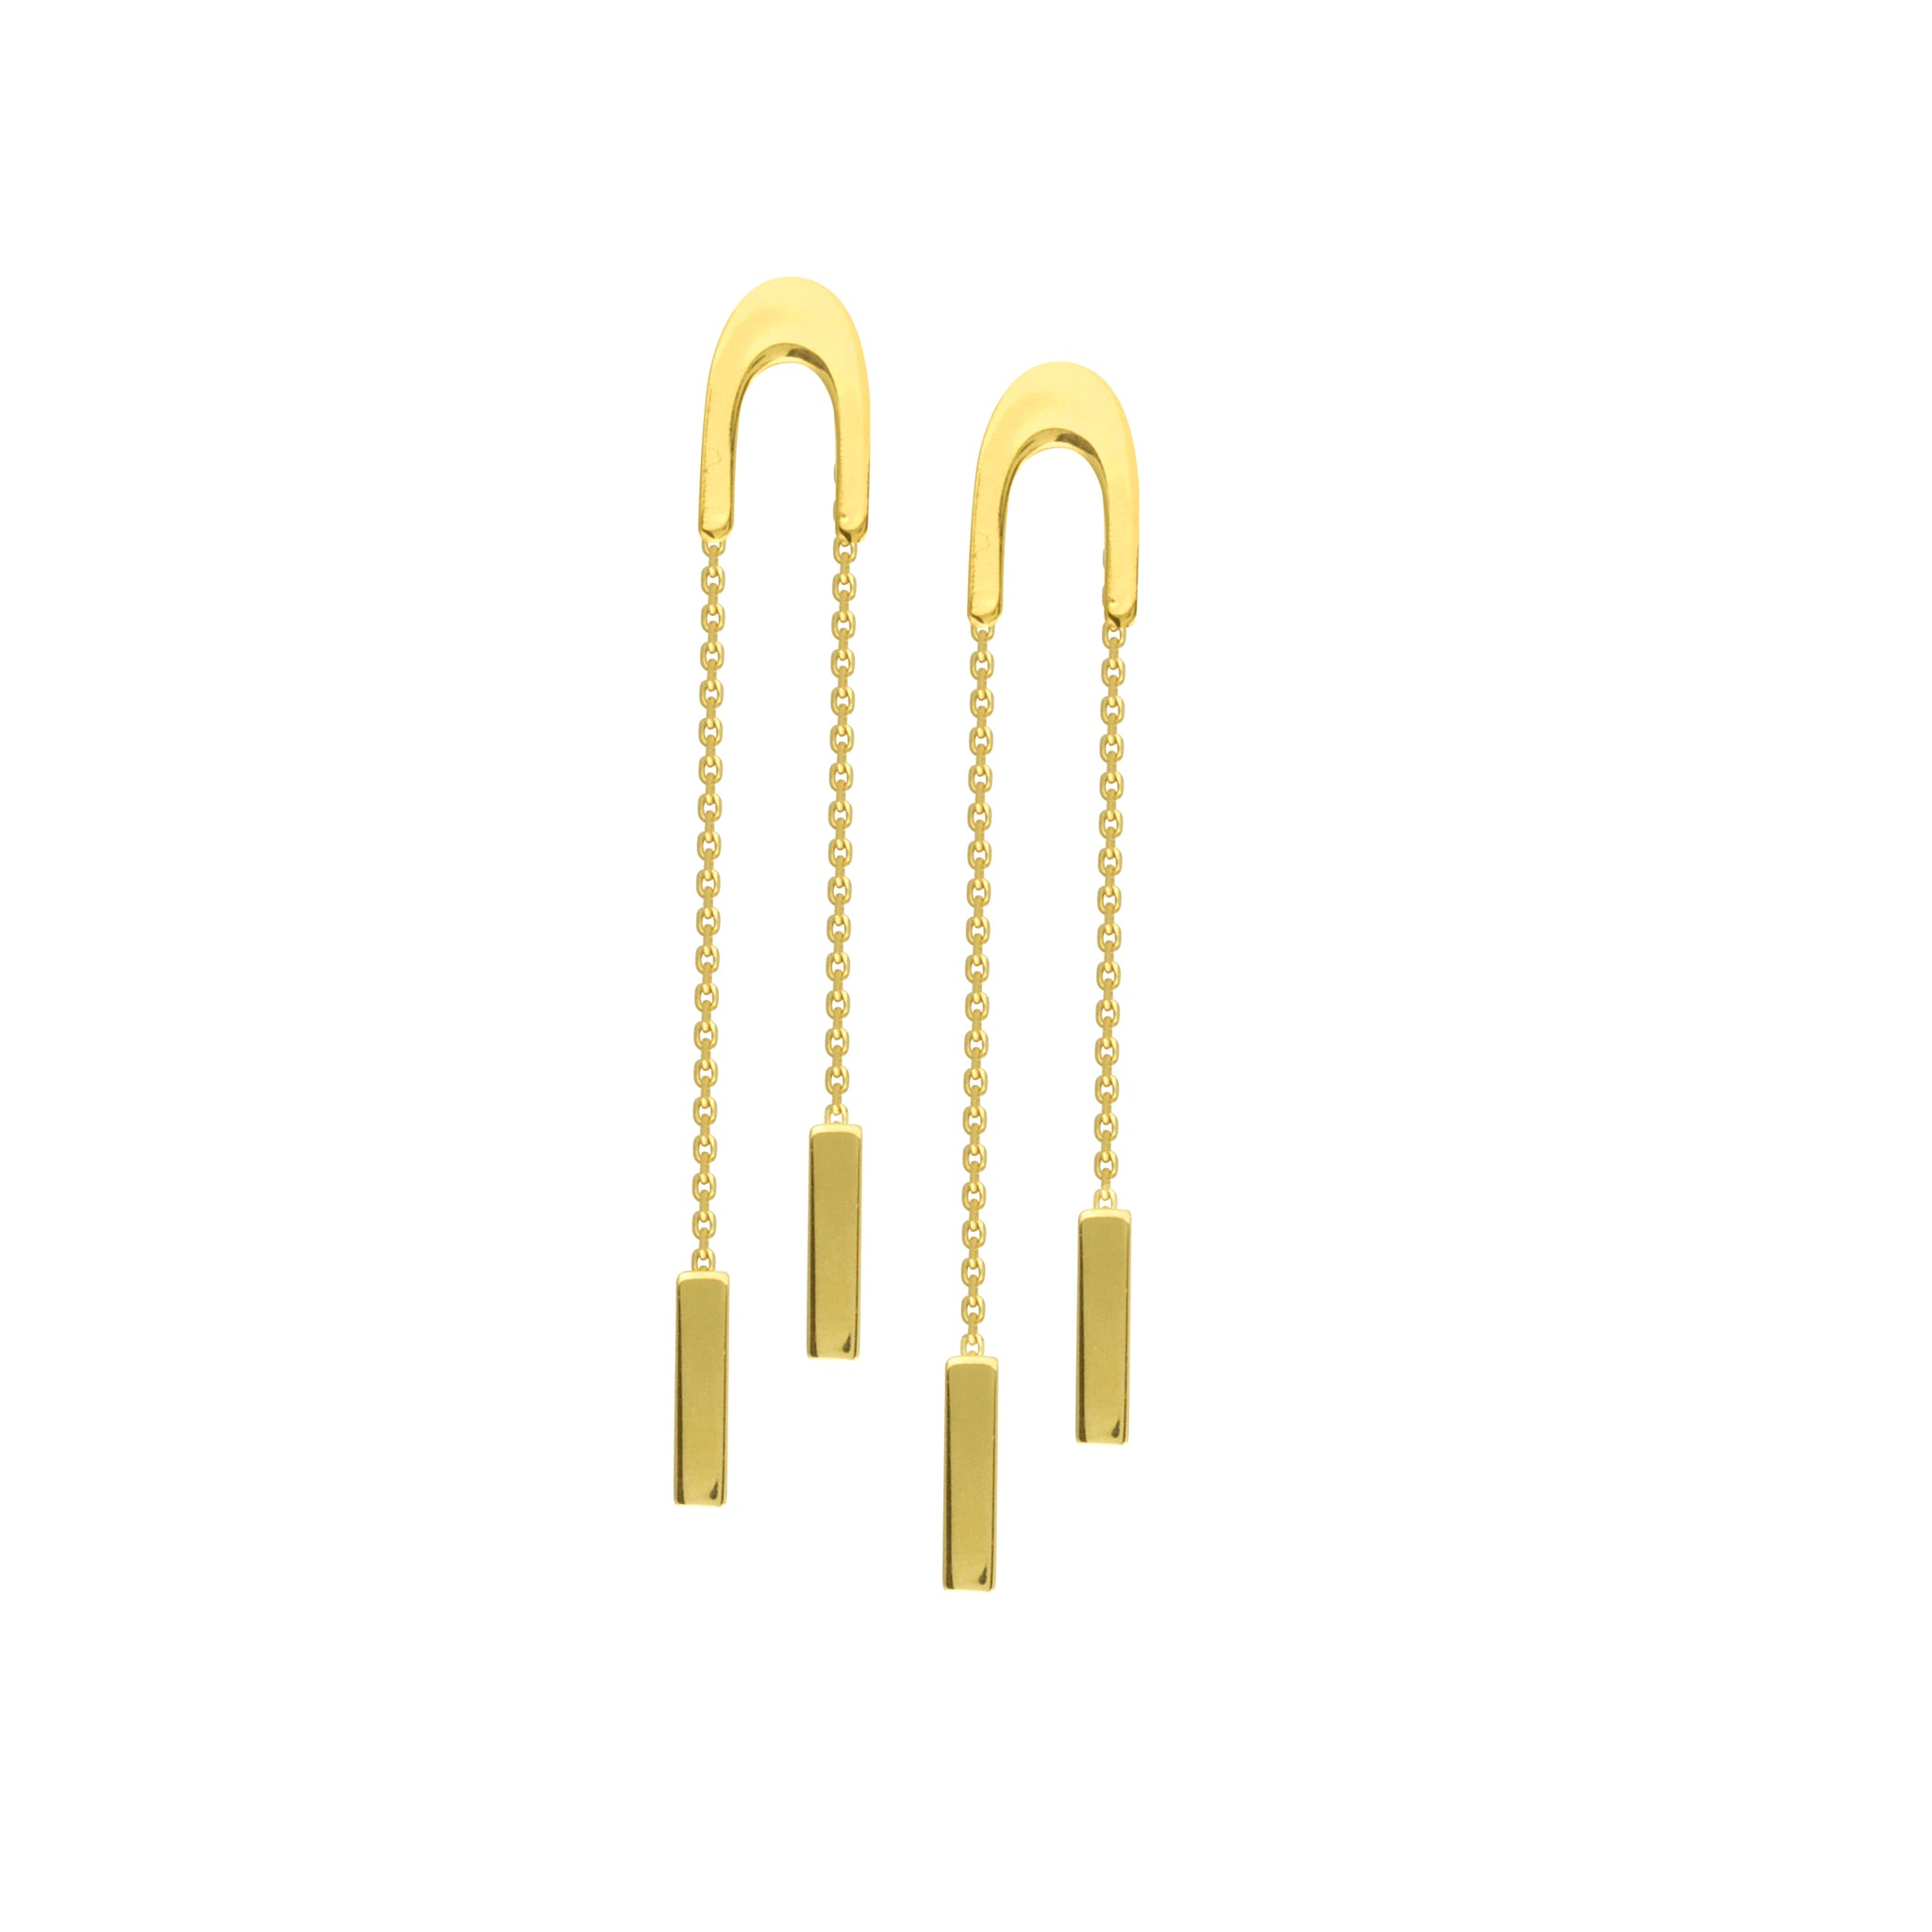 14K Gold U Shape Front Threaders With Dangle 8MM Bar Earrings